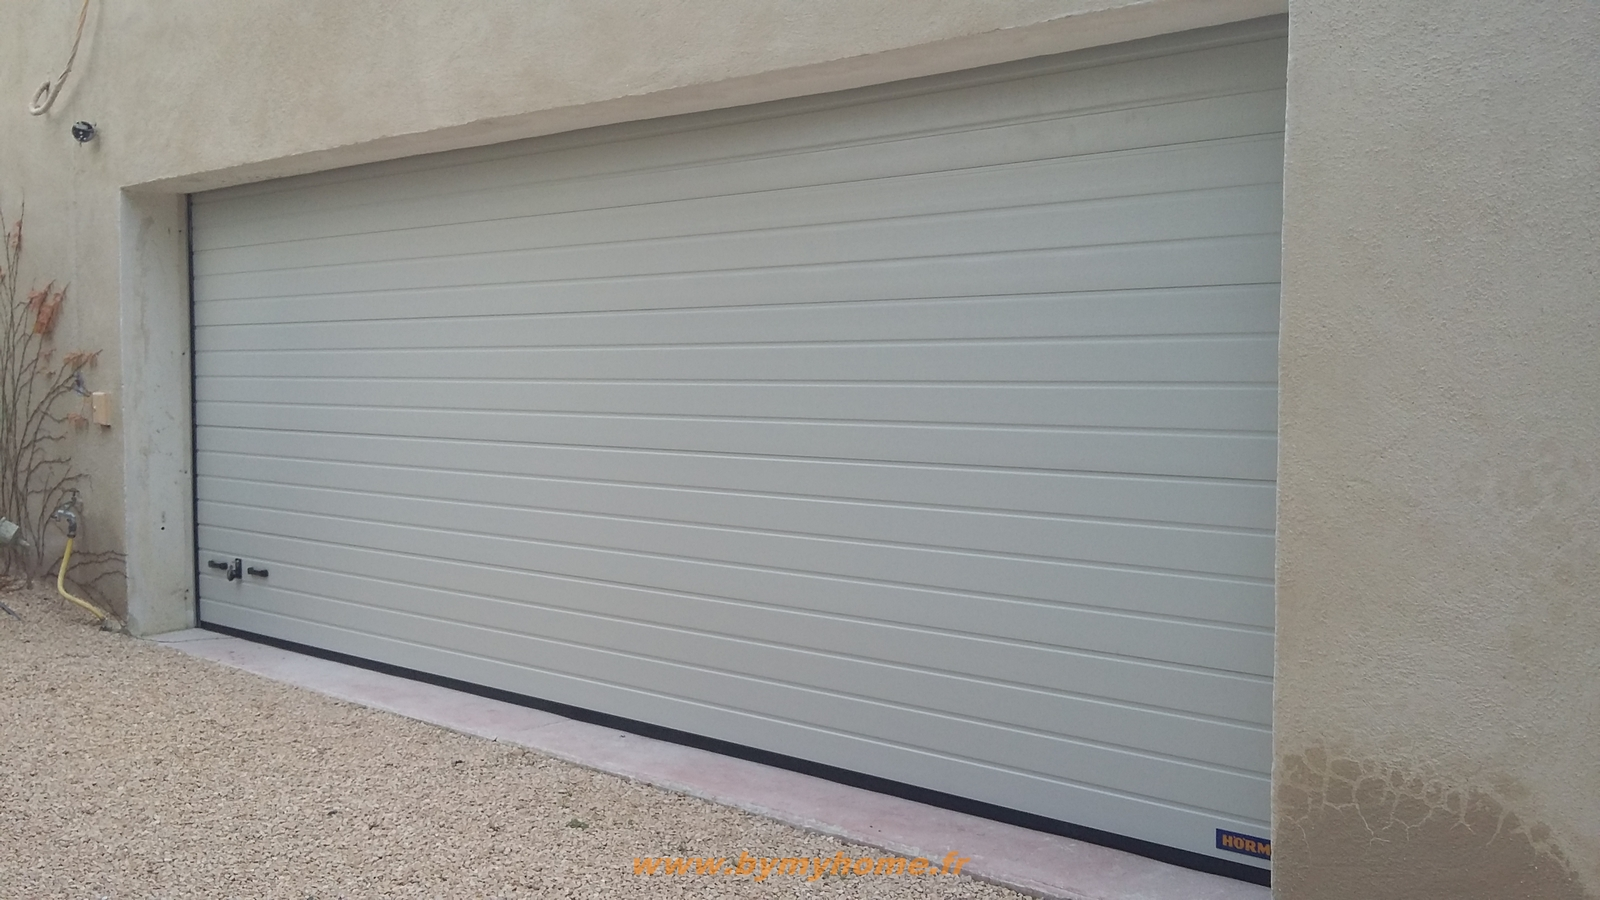 Installation d 39 une porte de garage sectionnelle motoris e - Installer une porte de garage sectionnelle ...